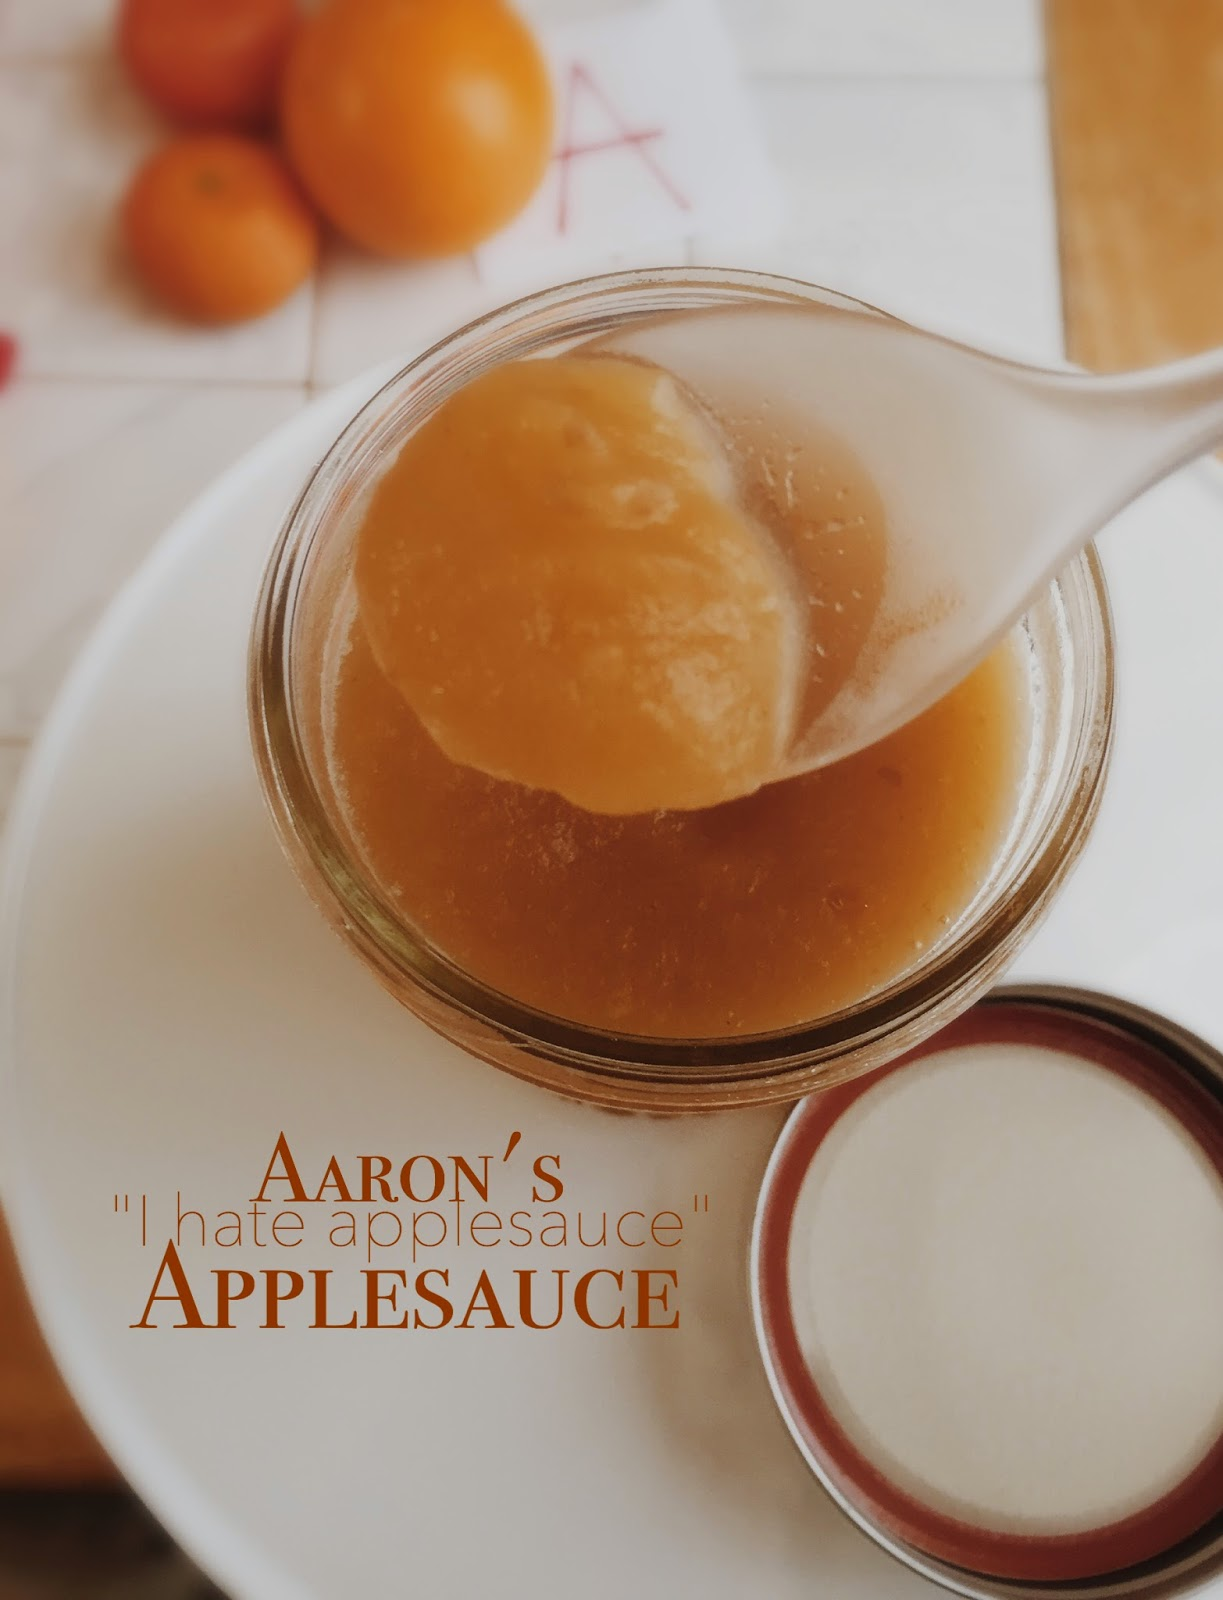 The Walking Dead's Aaron's Applesauce